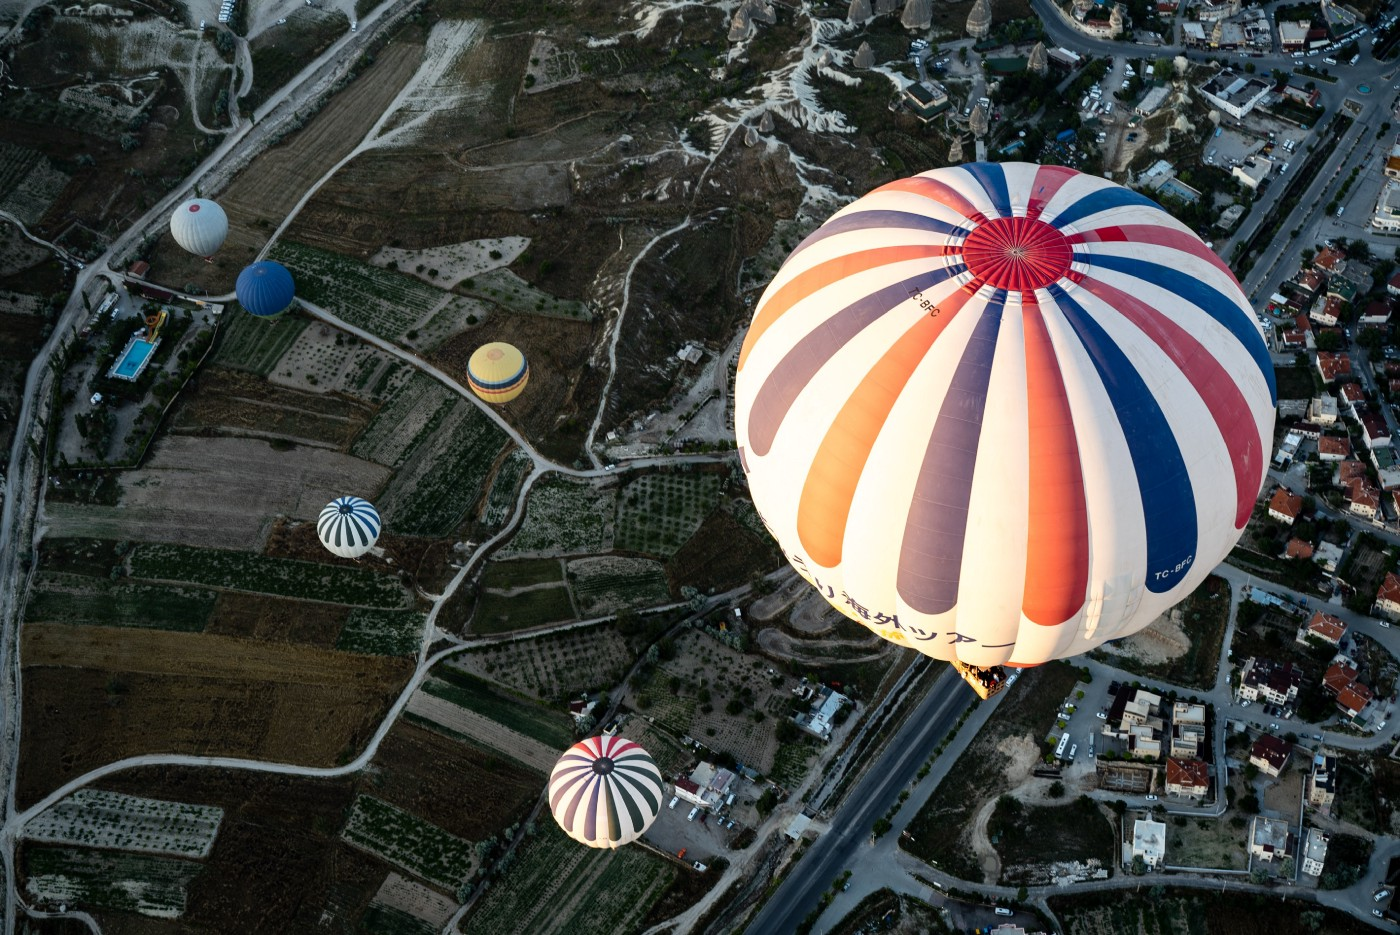 aerial view of hot air balloons hovering over a city